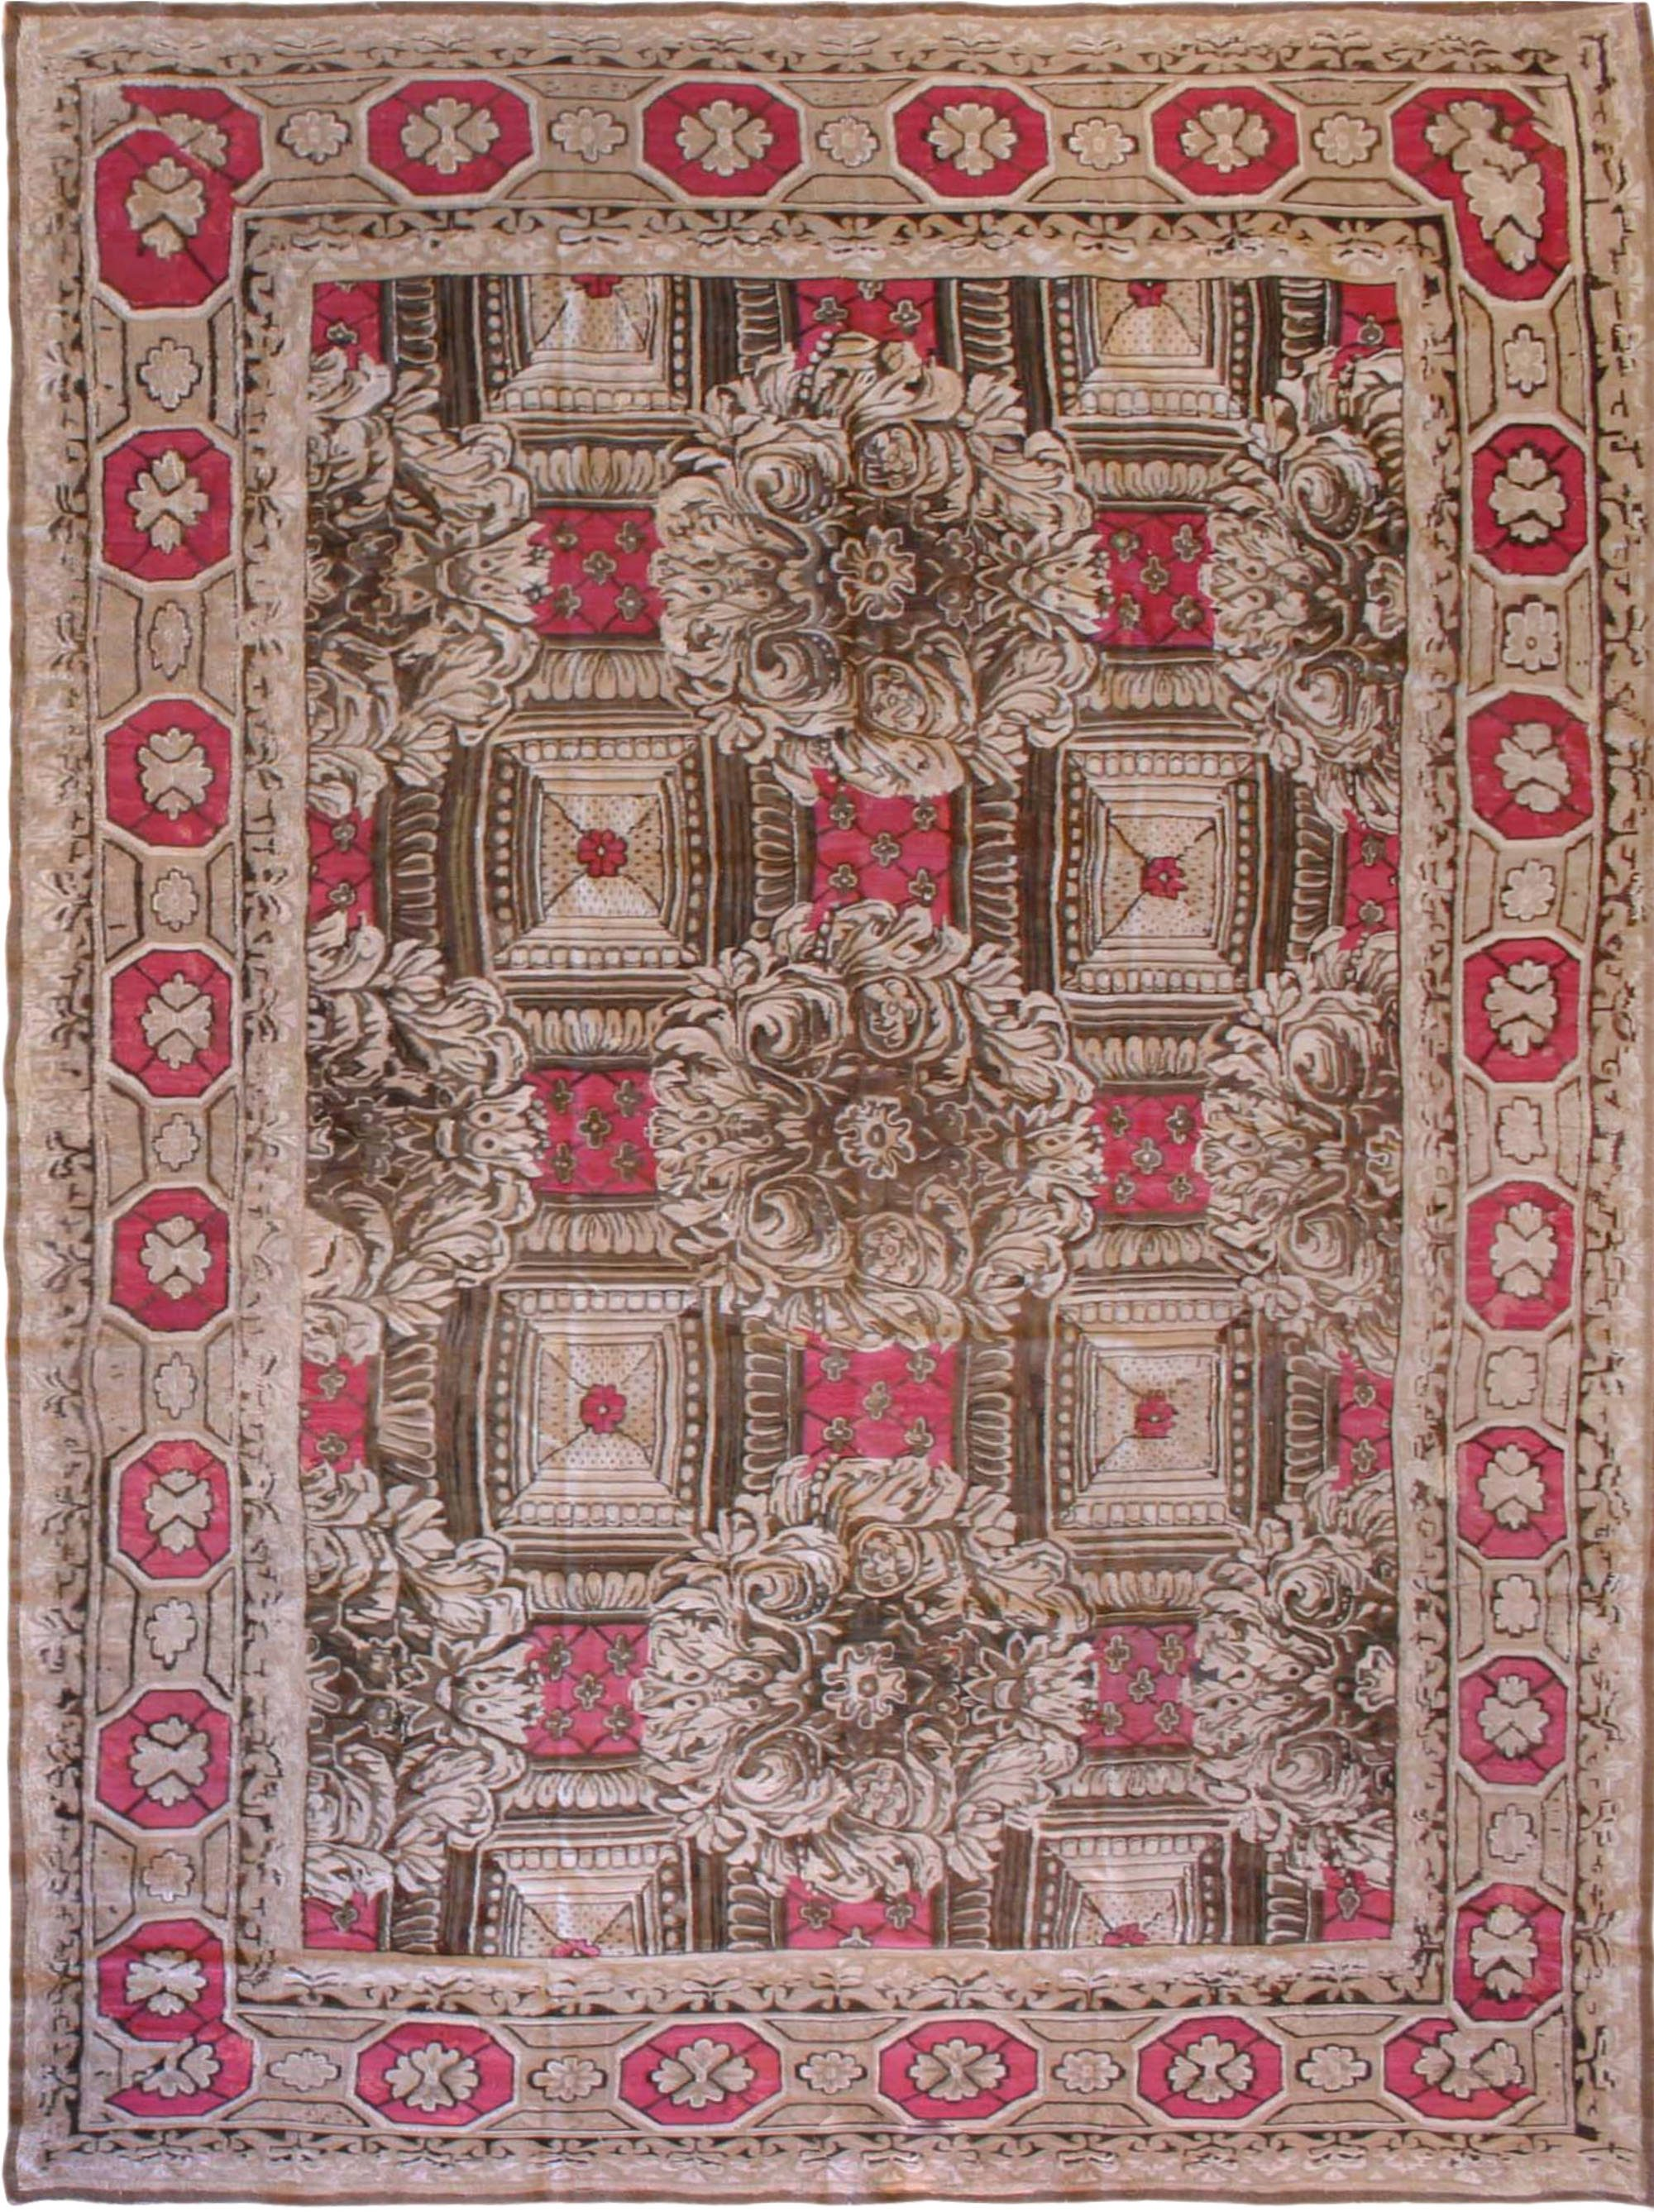 19th Century Ukrainian Rose and Beige Handwoven Wool Carpet BB6692